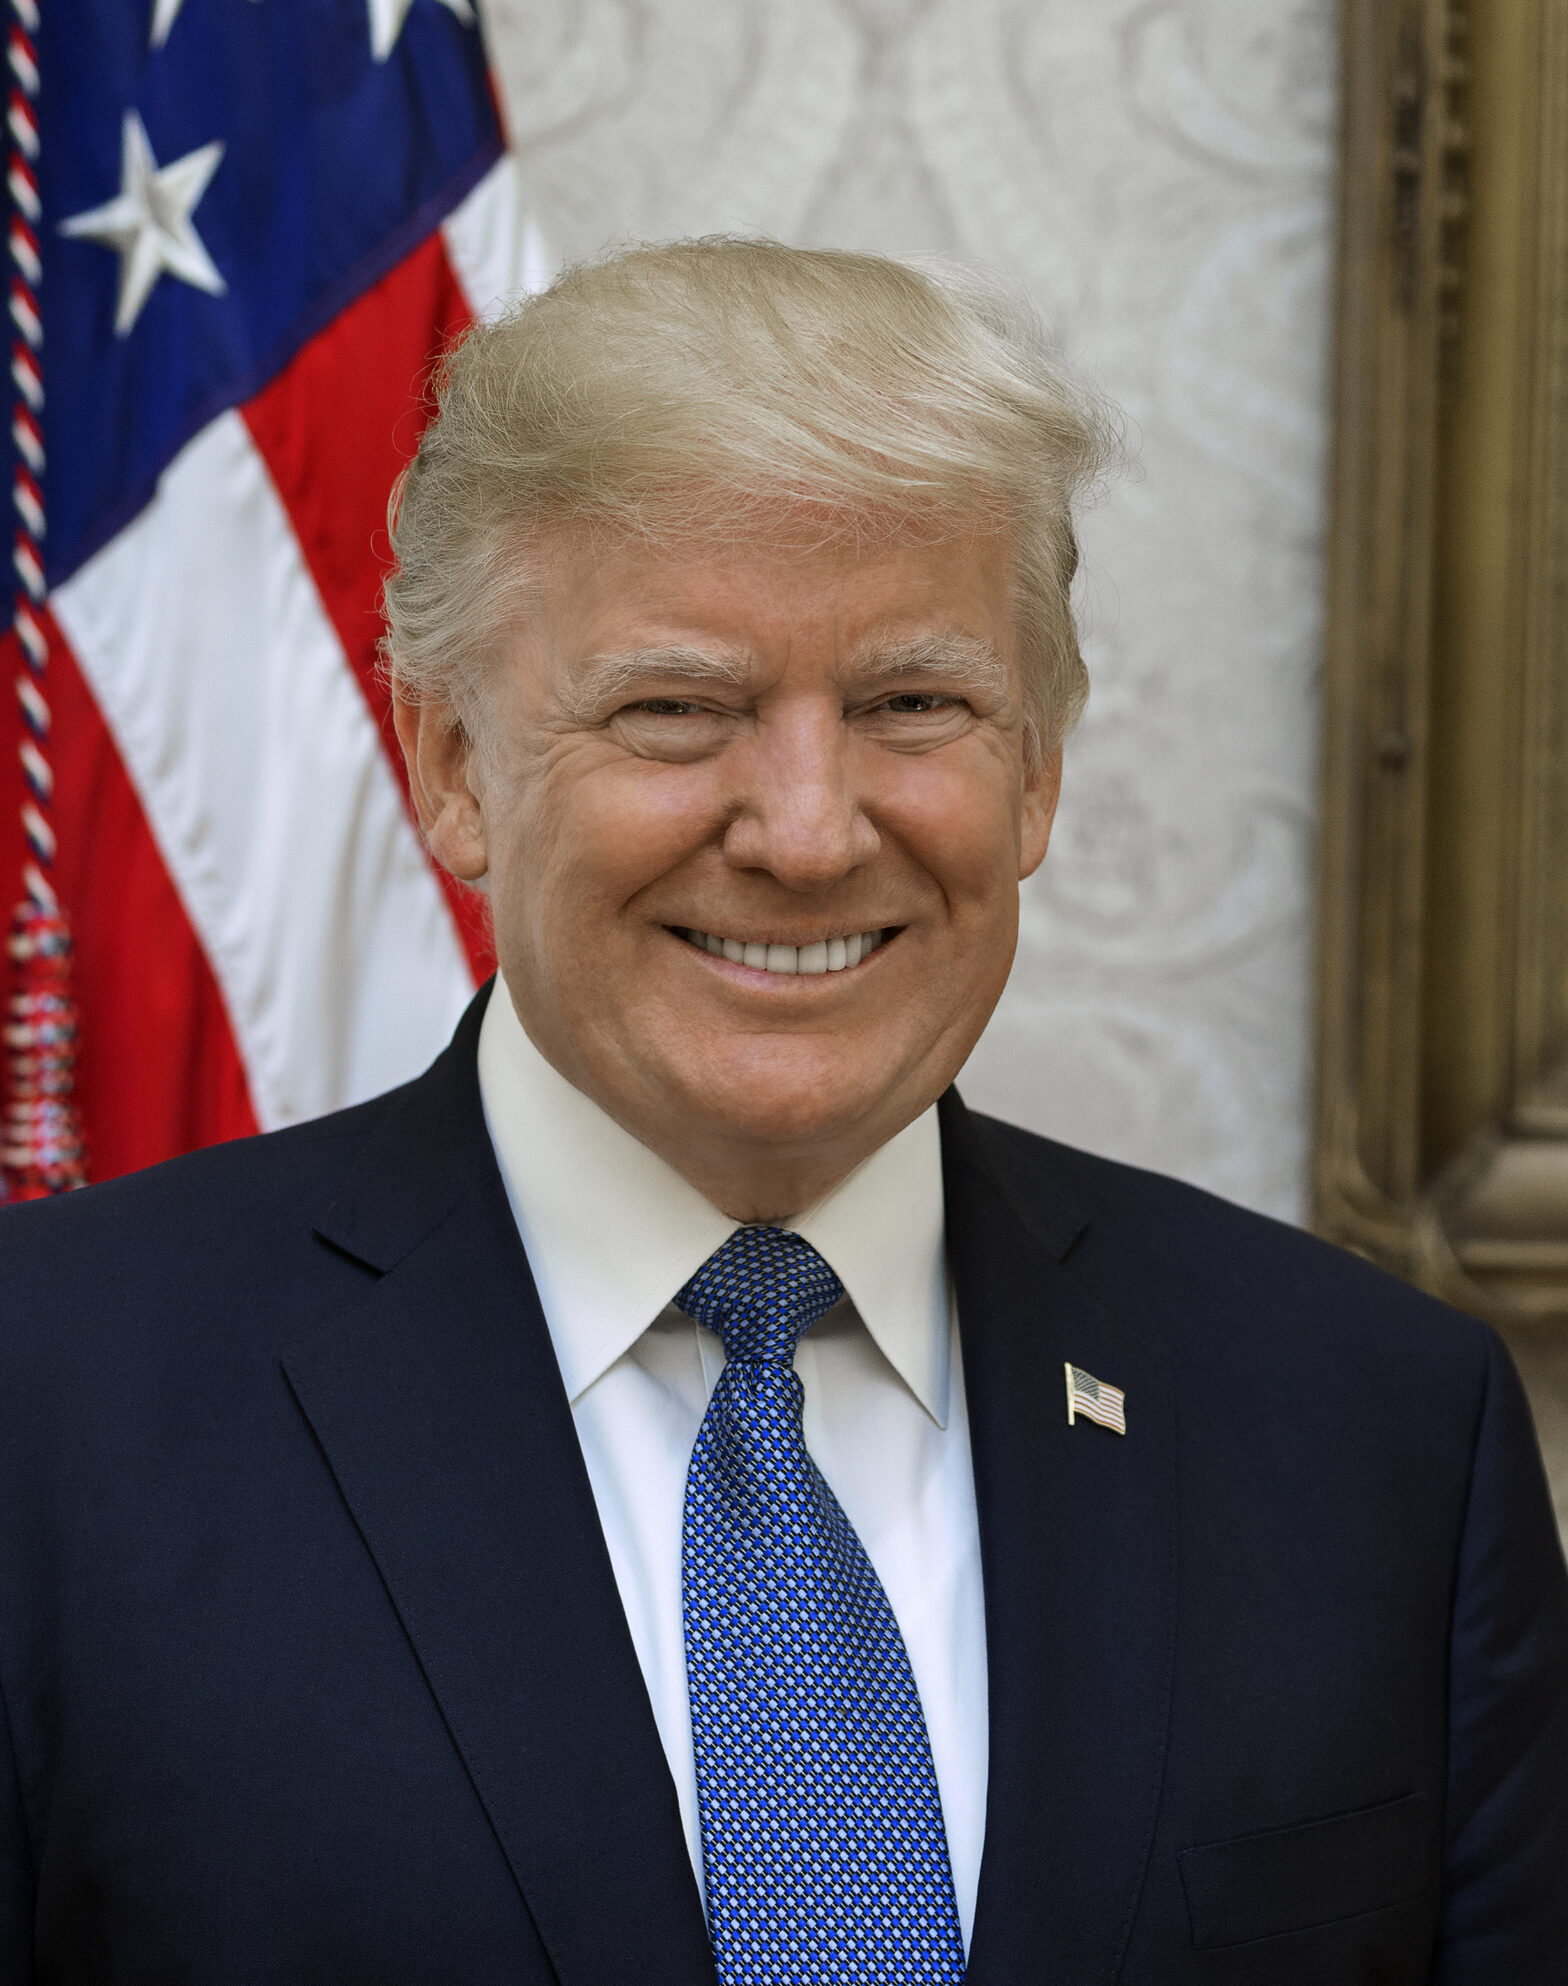 President Donald J. Trump Portrait